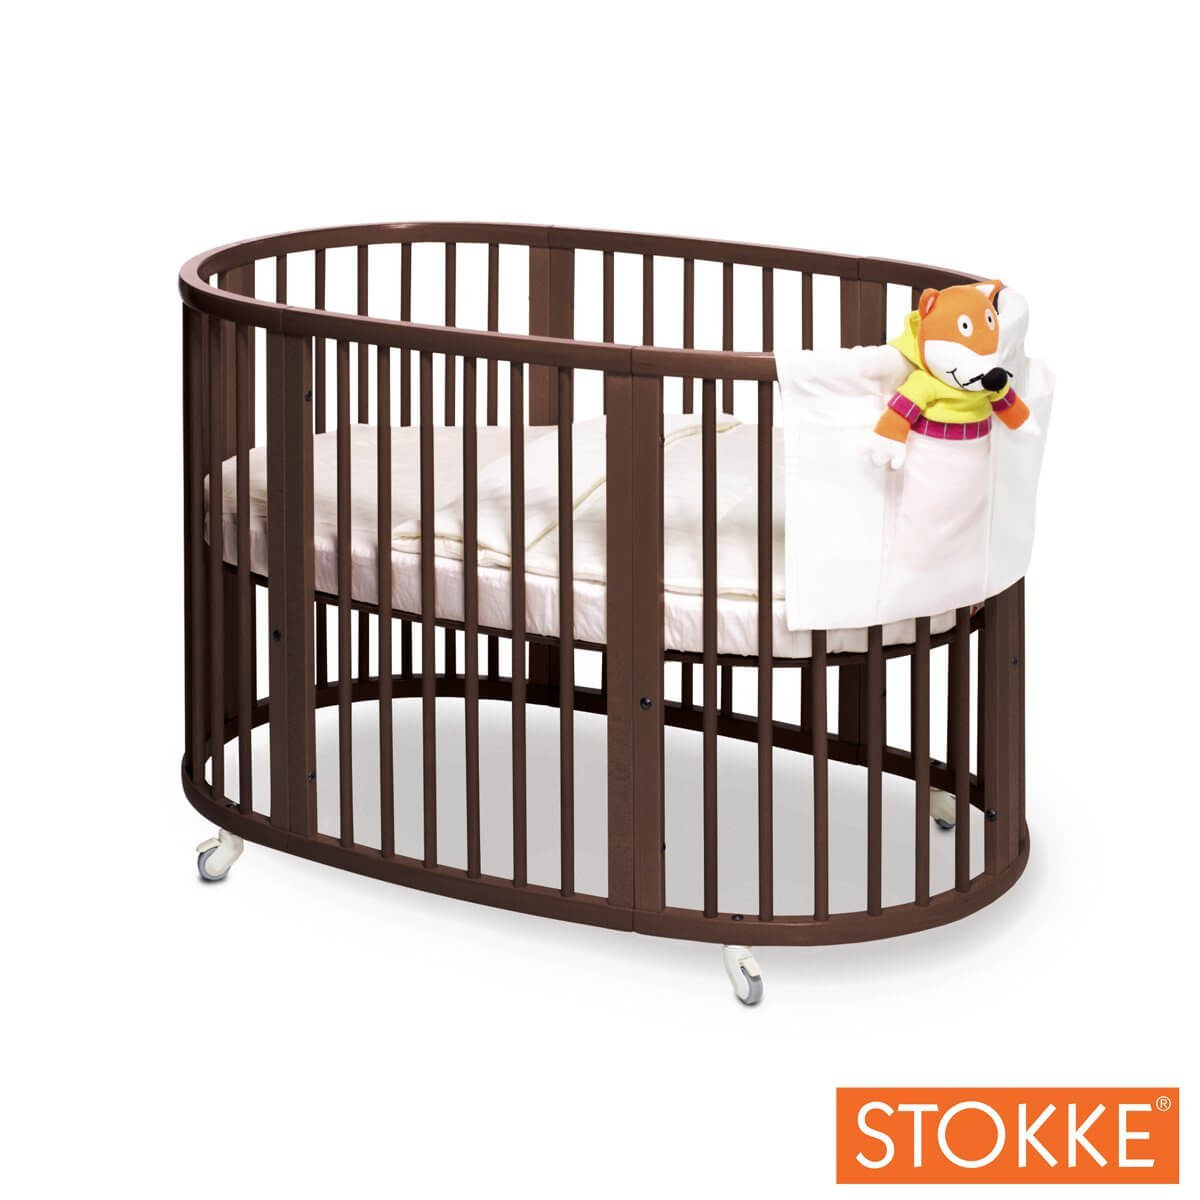 best newborn baby bassinets for in 2017 reviews 10 best baby cribs ultimate parents guide 2017 10